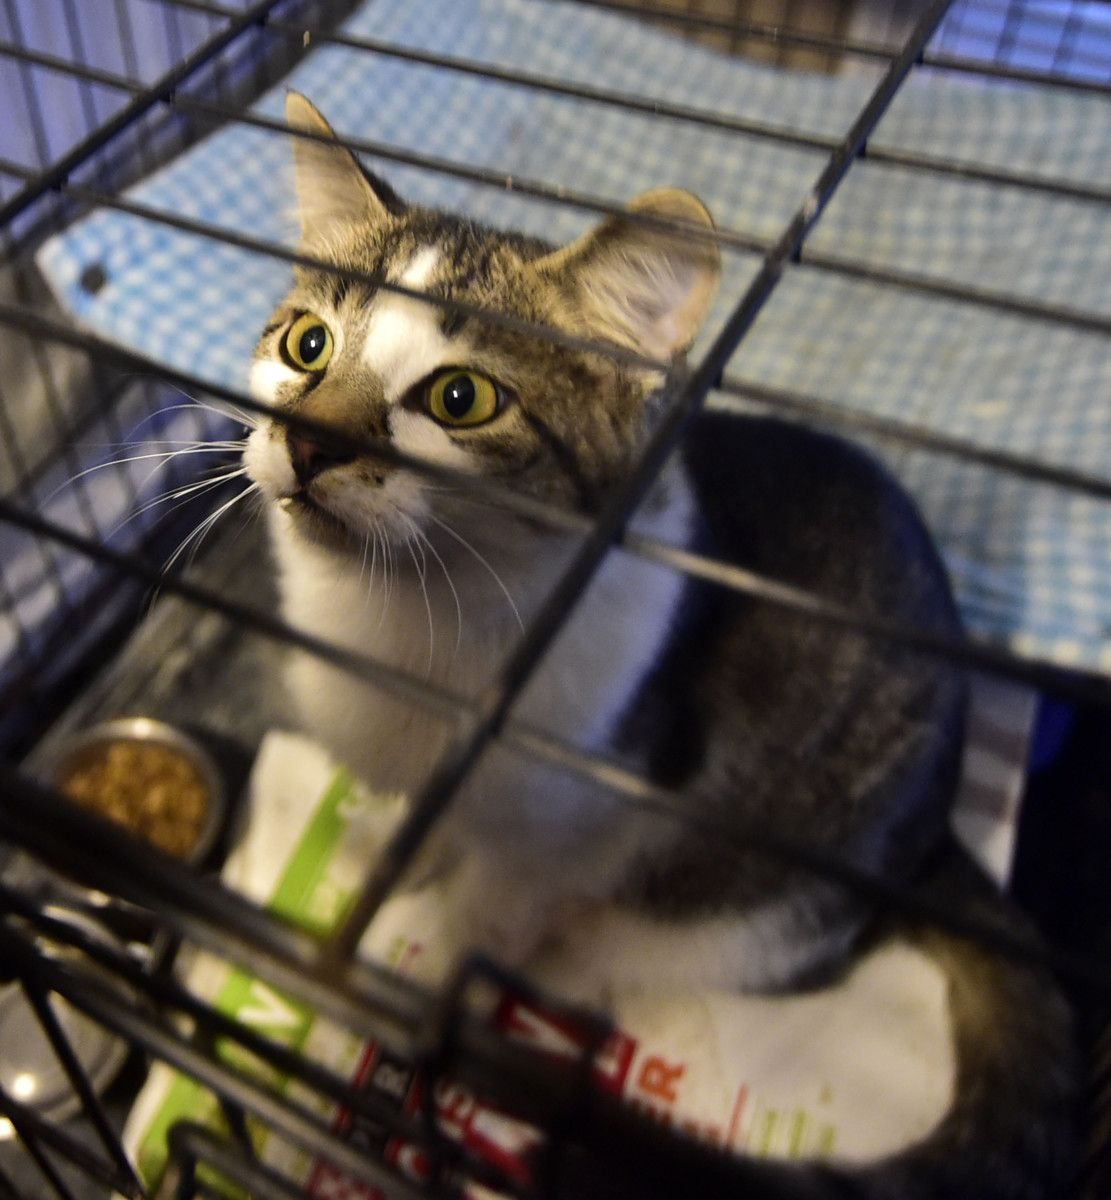 Savy And Indy Needed A Loving Home Savy A Gray And White Cat That Had A Head Injury Was Found Outside On A Stormy N Grey And White Cat Animals Animal